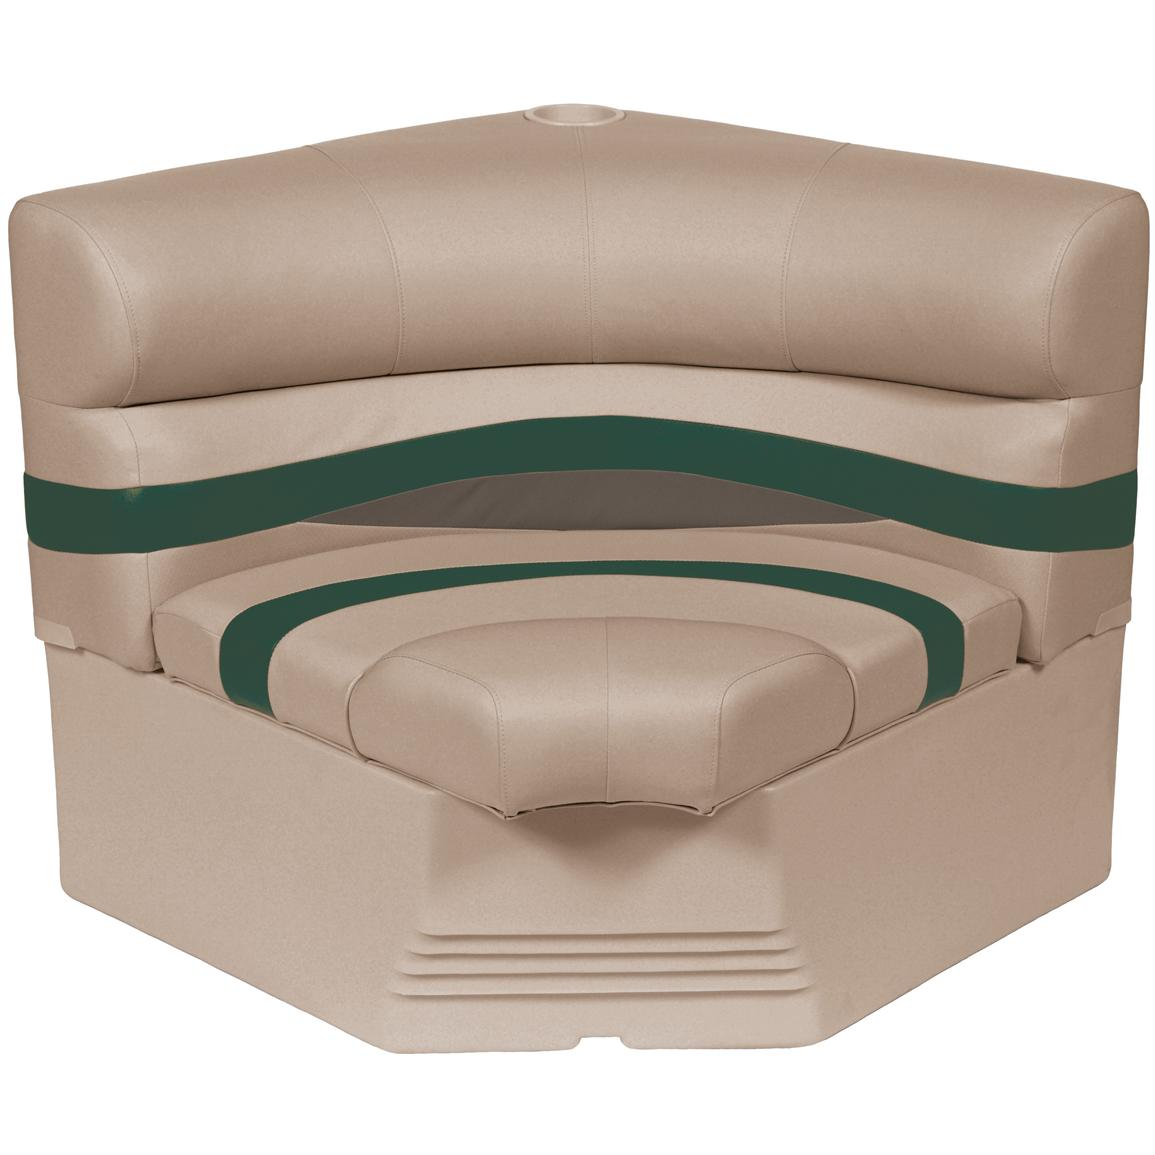 Wise® Premier 1100 Series 32 inch Pontoon Radius Corner Seat, Color F